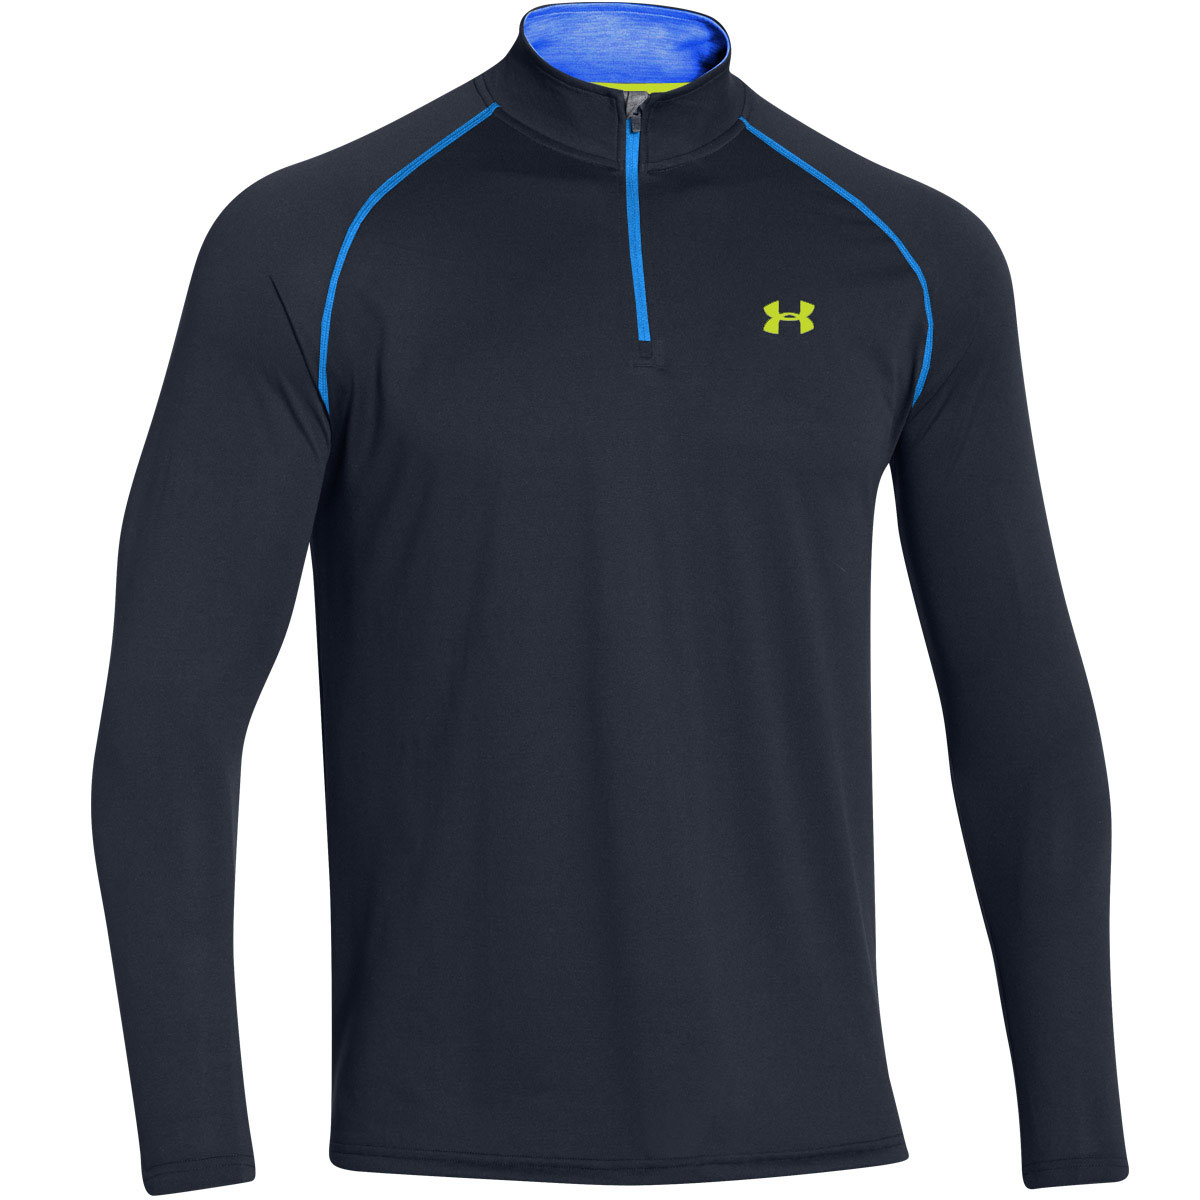 Under-Armour-Mens-UA-Tech-1-4-Zip-Long-Sleeve-Top-Workout-Layer-27-OFF-RRP thumbnail 16